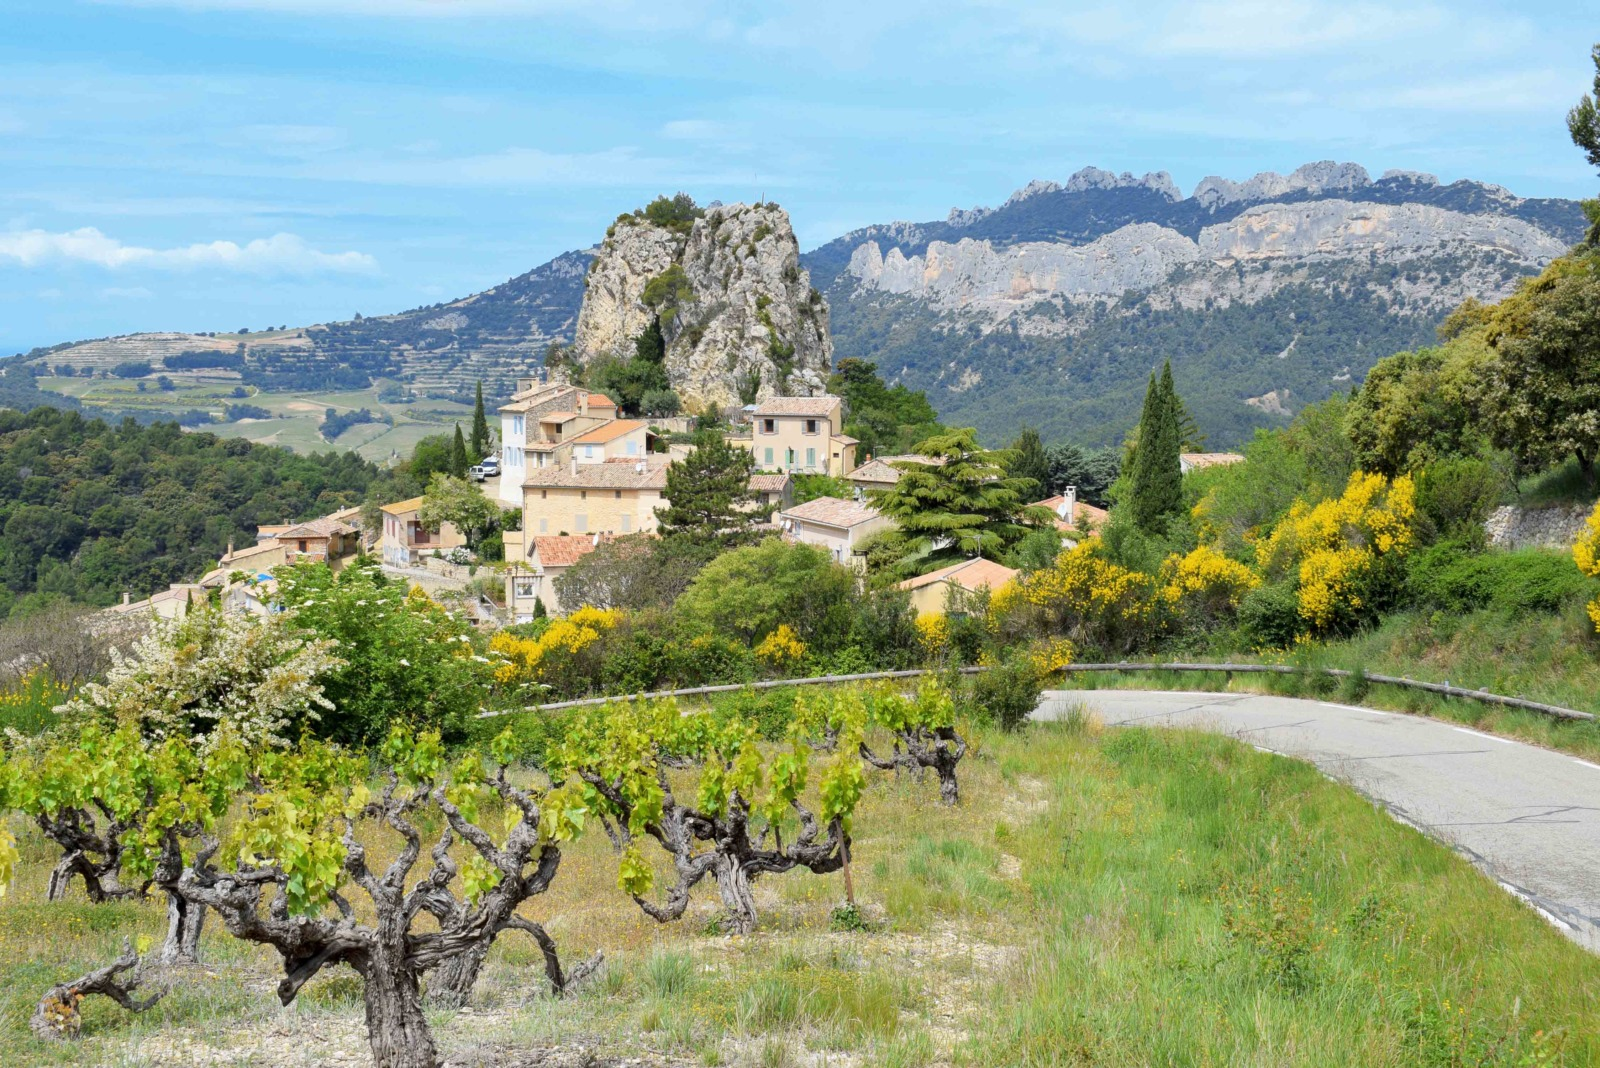 The village of La Roque Alric and the Dentelles de Montmirail in the background © French Moments